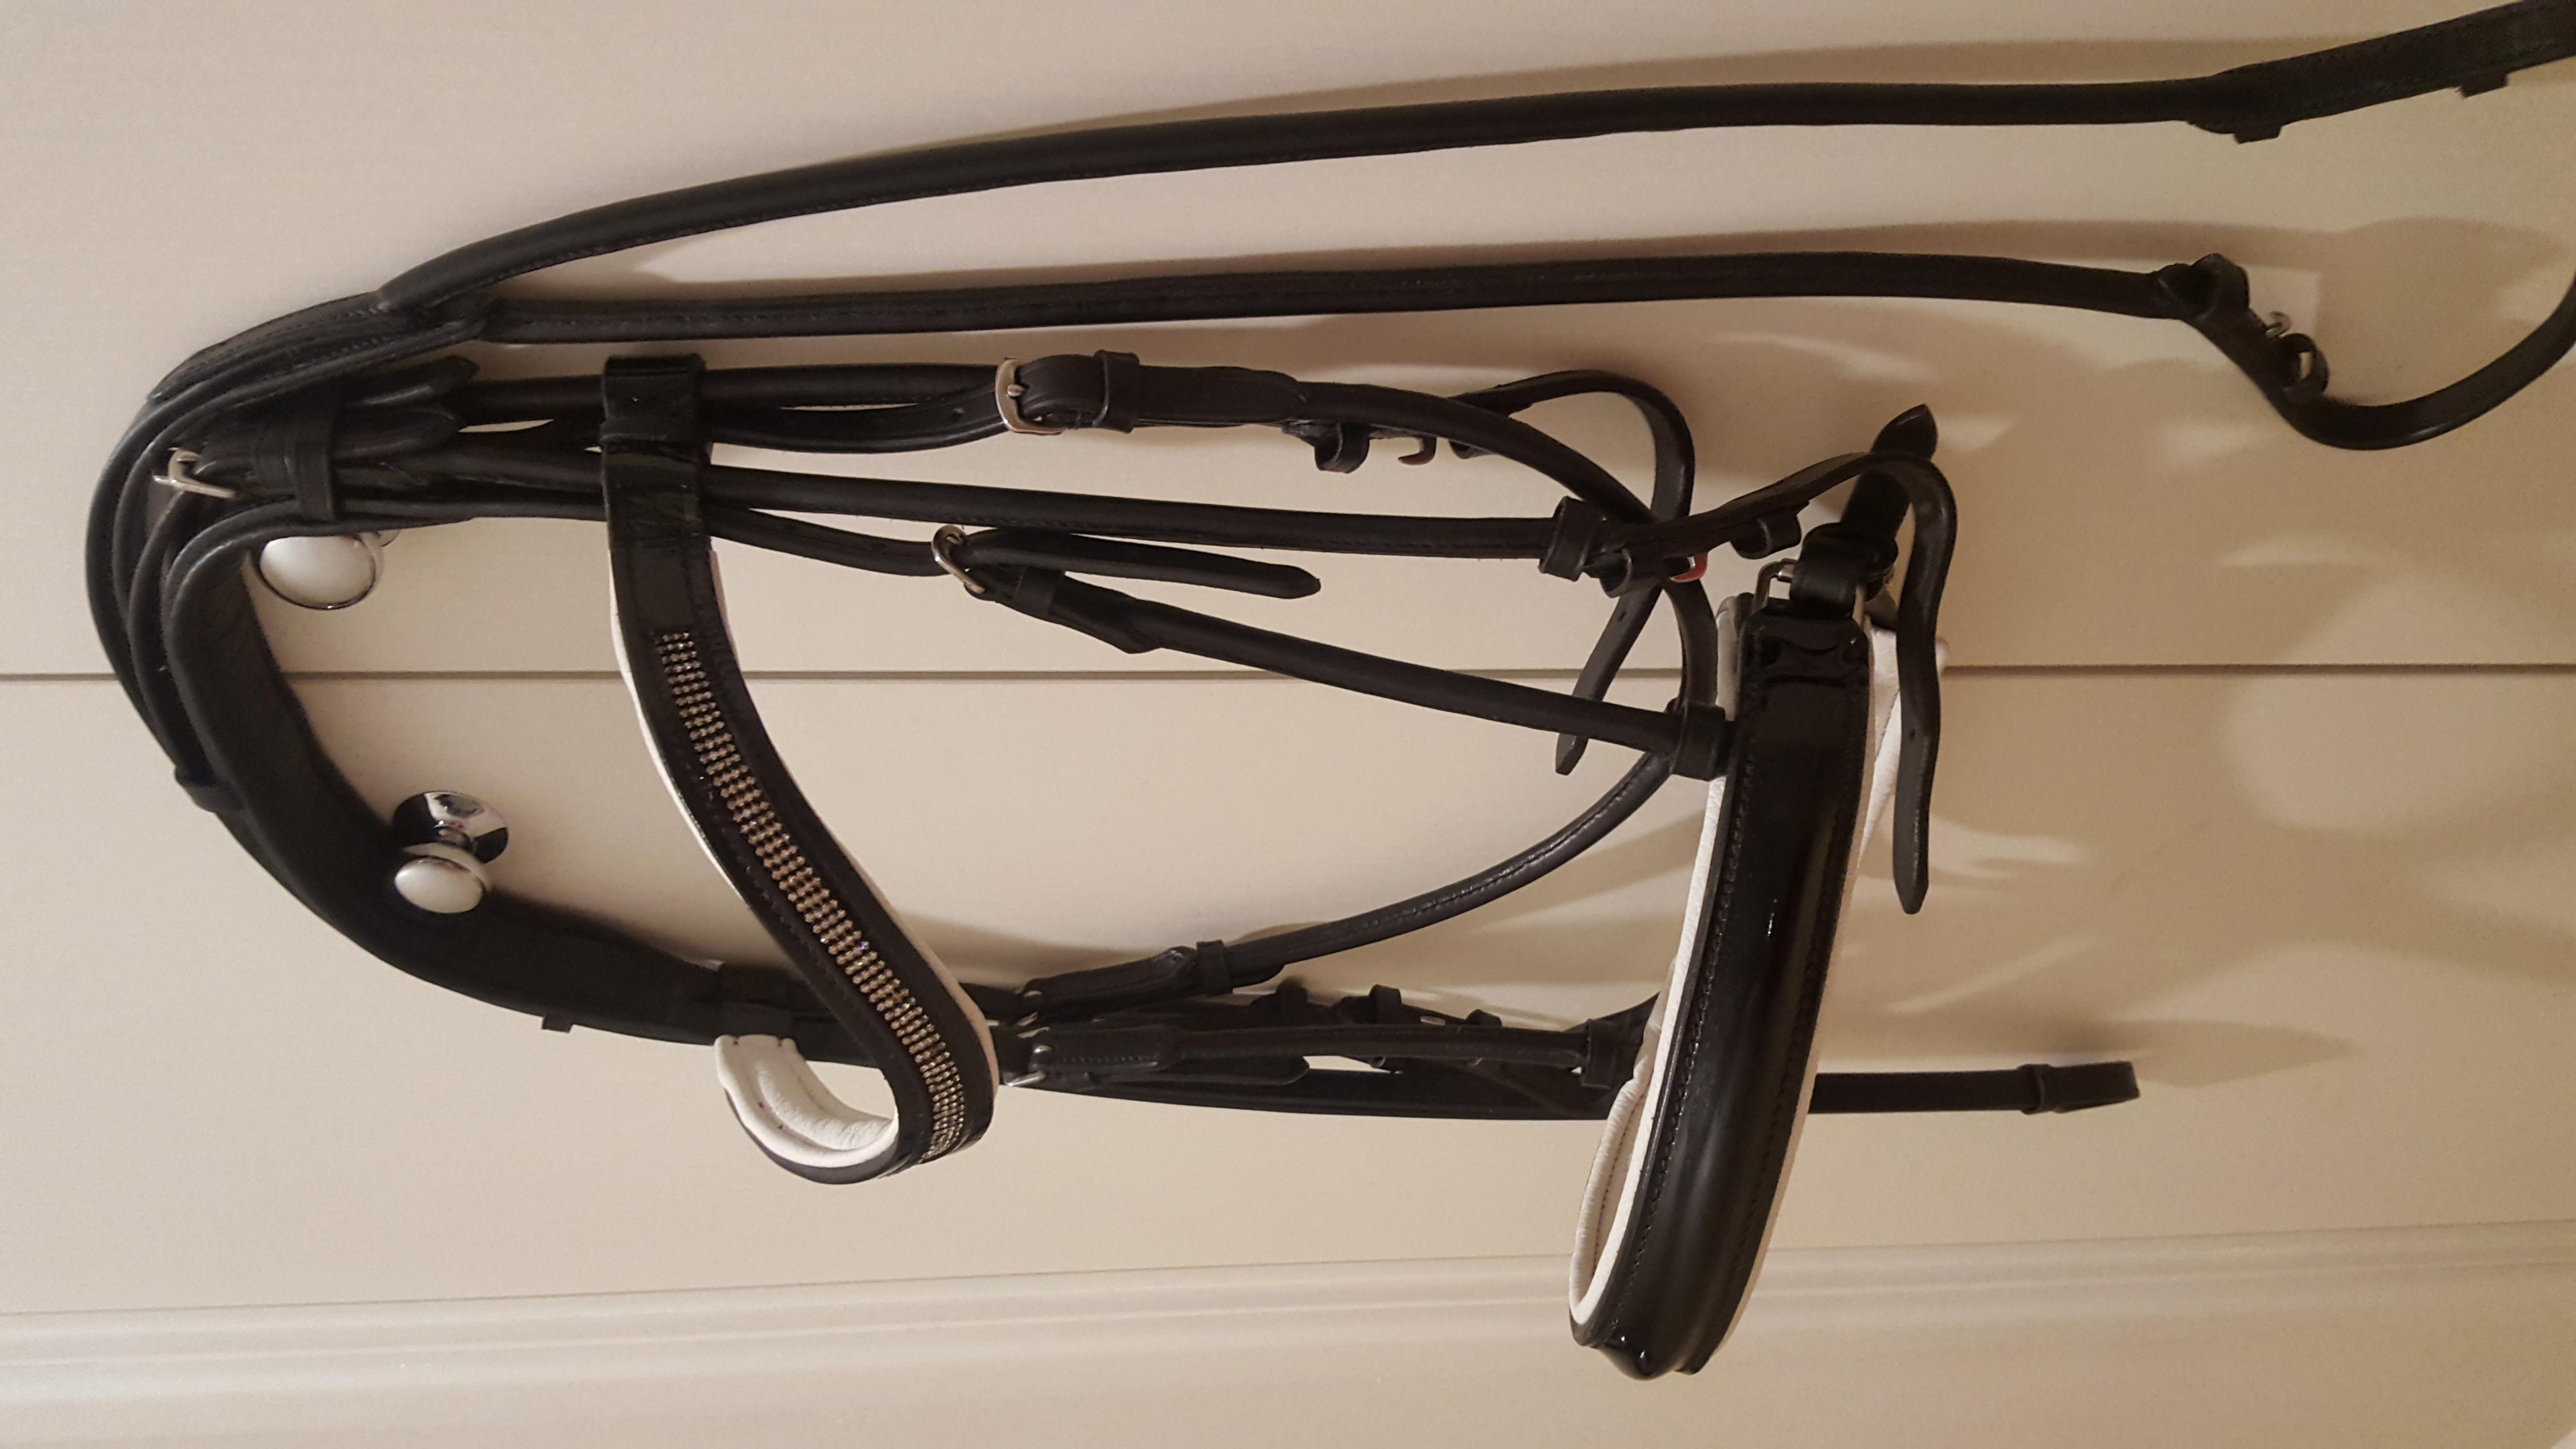 Flexifit Rolled Double Bridle